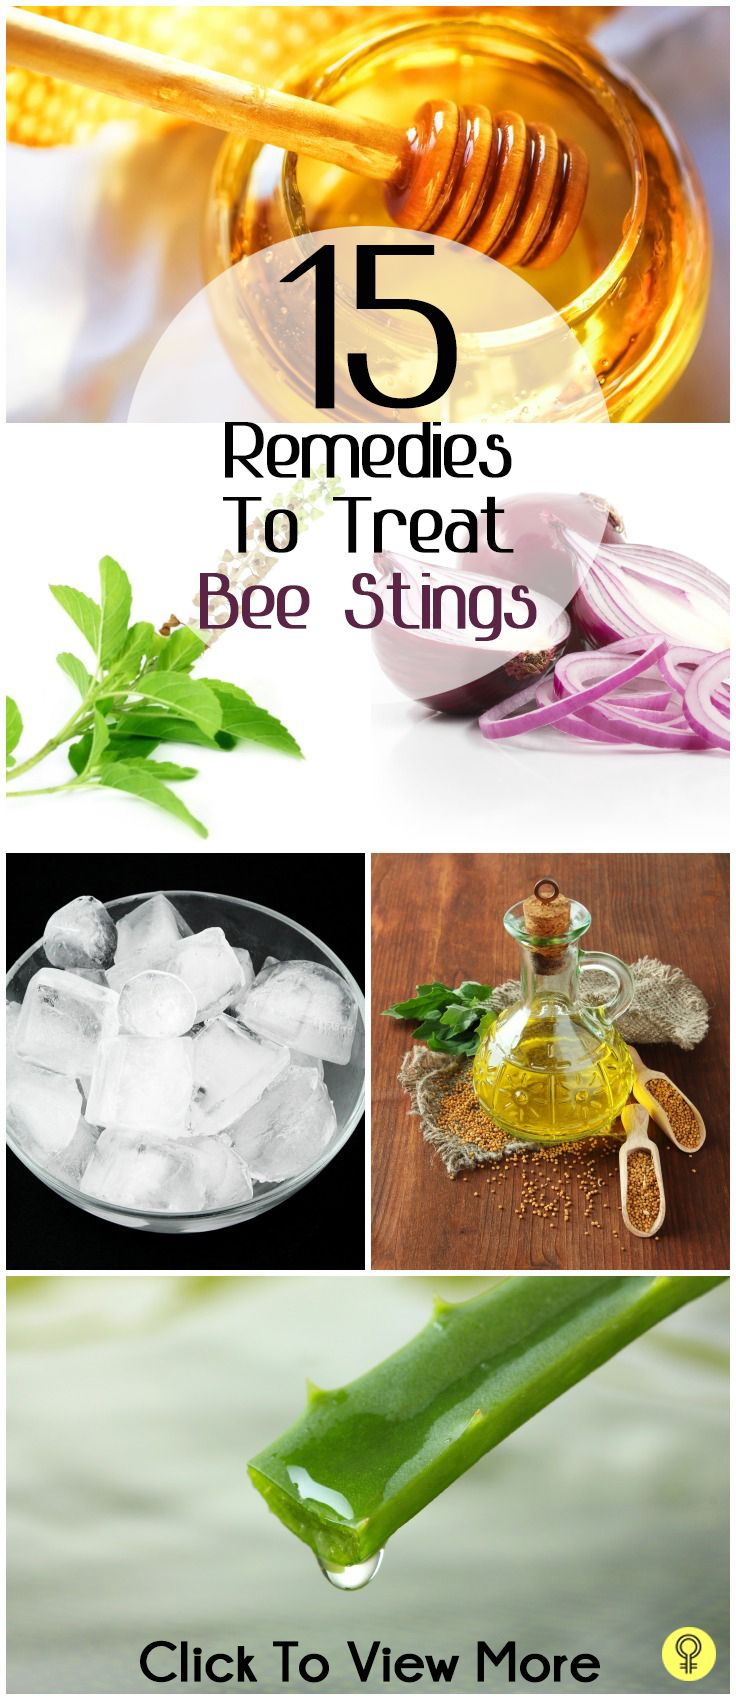 What can you put on a bee sting to relieve the pain?